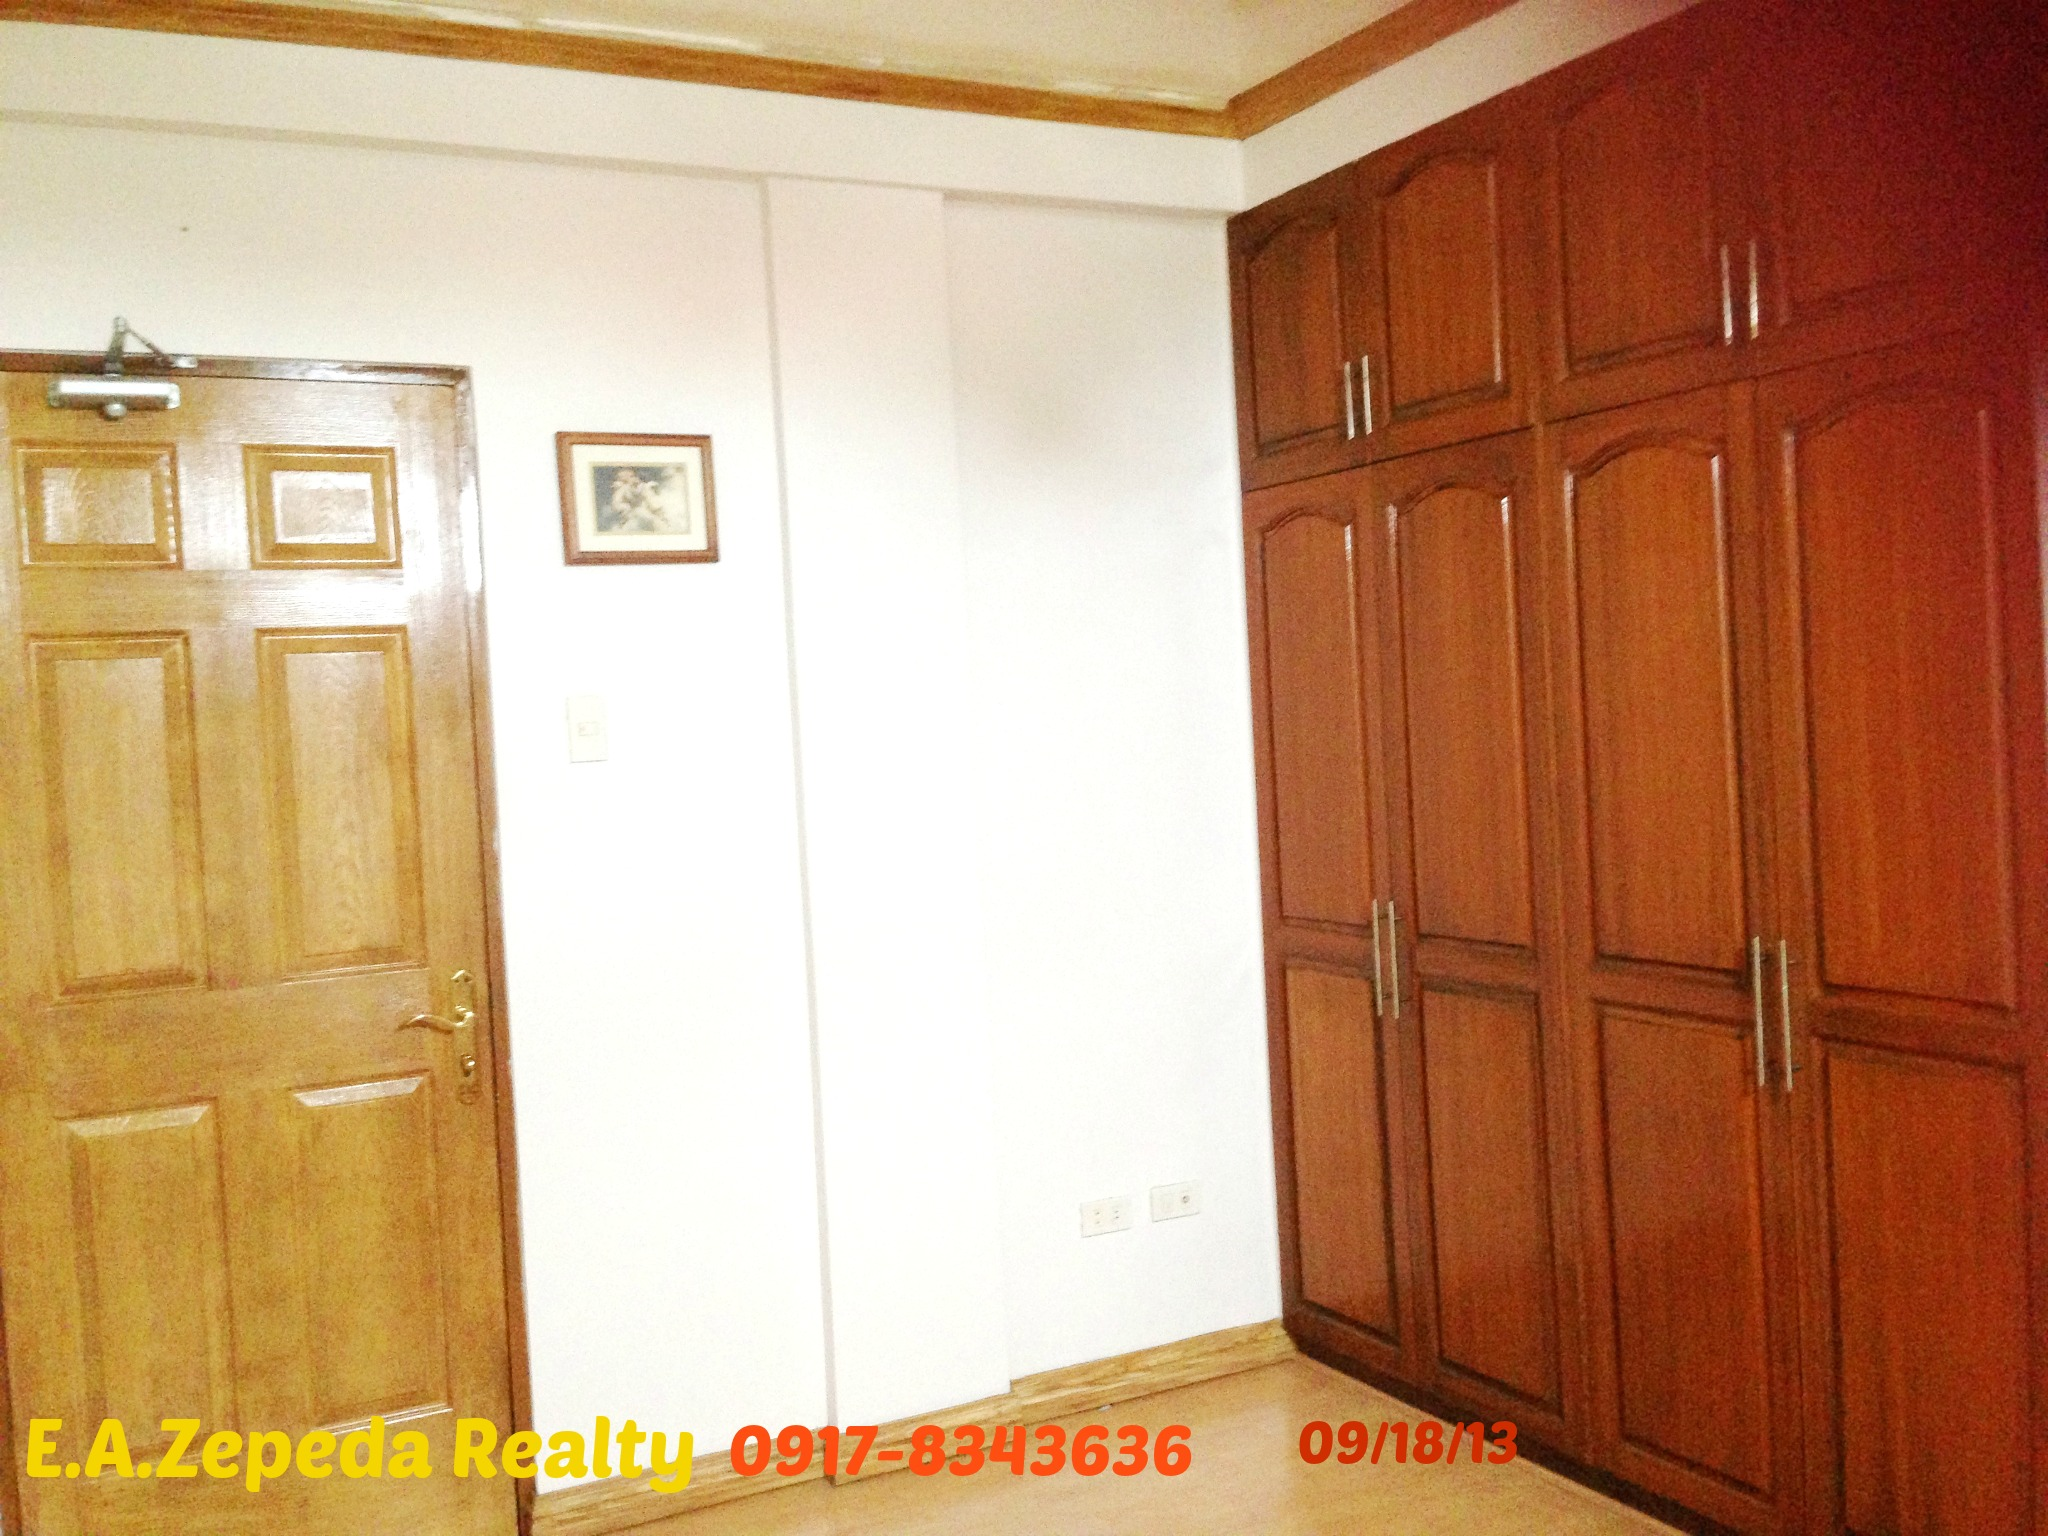 FOR SALE: House Manila Metropolitan Area > Paranaque 20